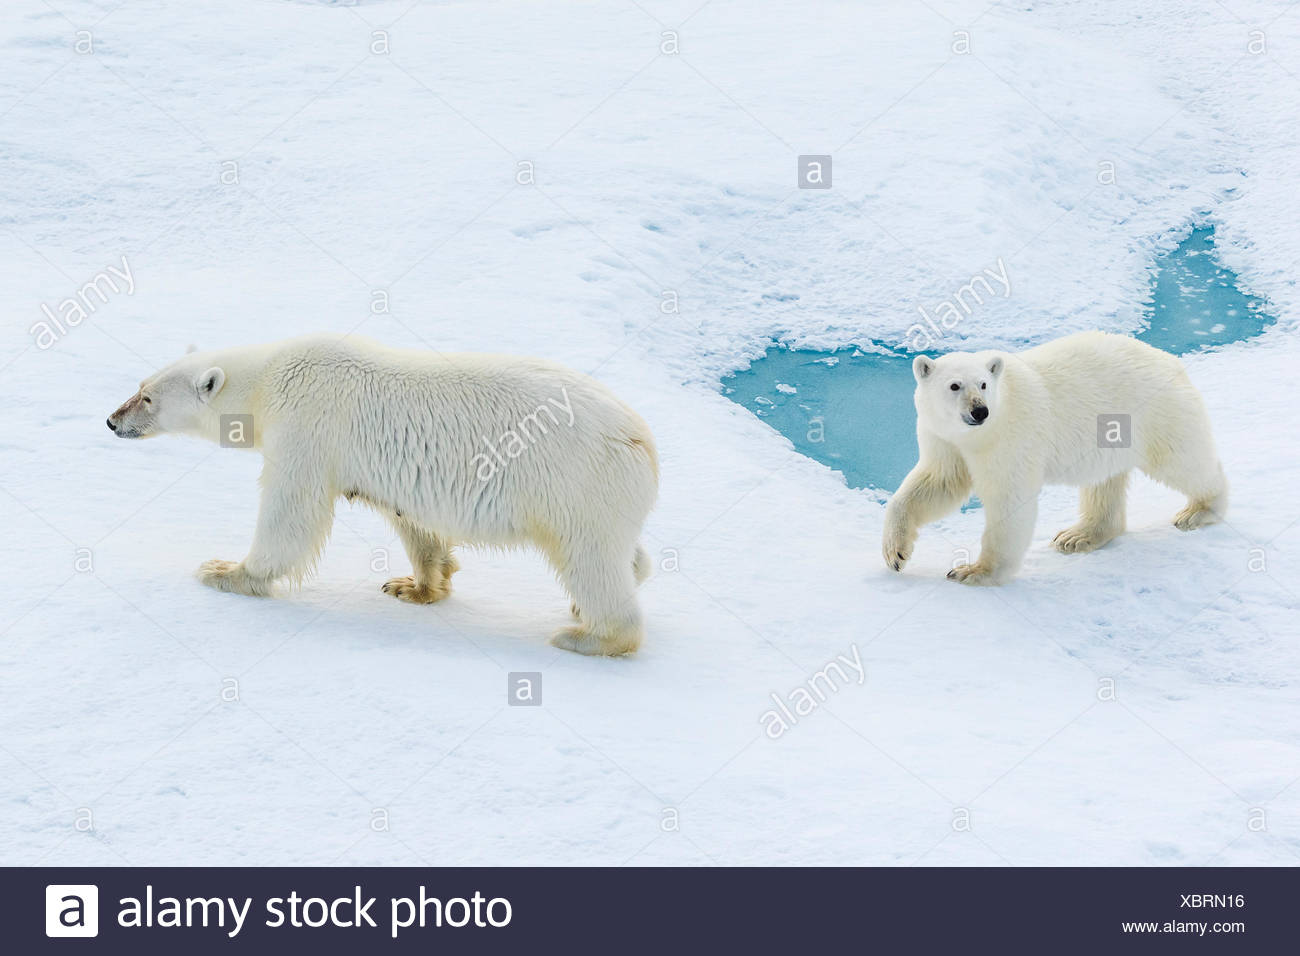 A polar bear cub and its mother (Ursus maritimus) wander across pack ice in the Canadian Arctic. - Stock Image